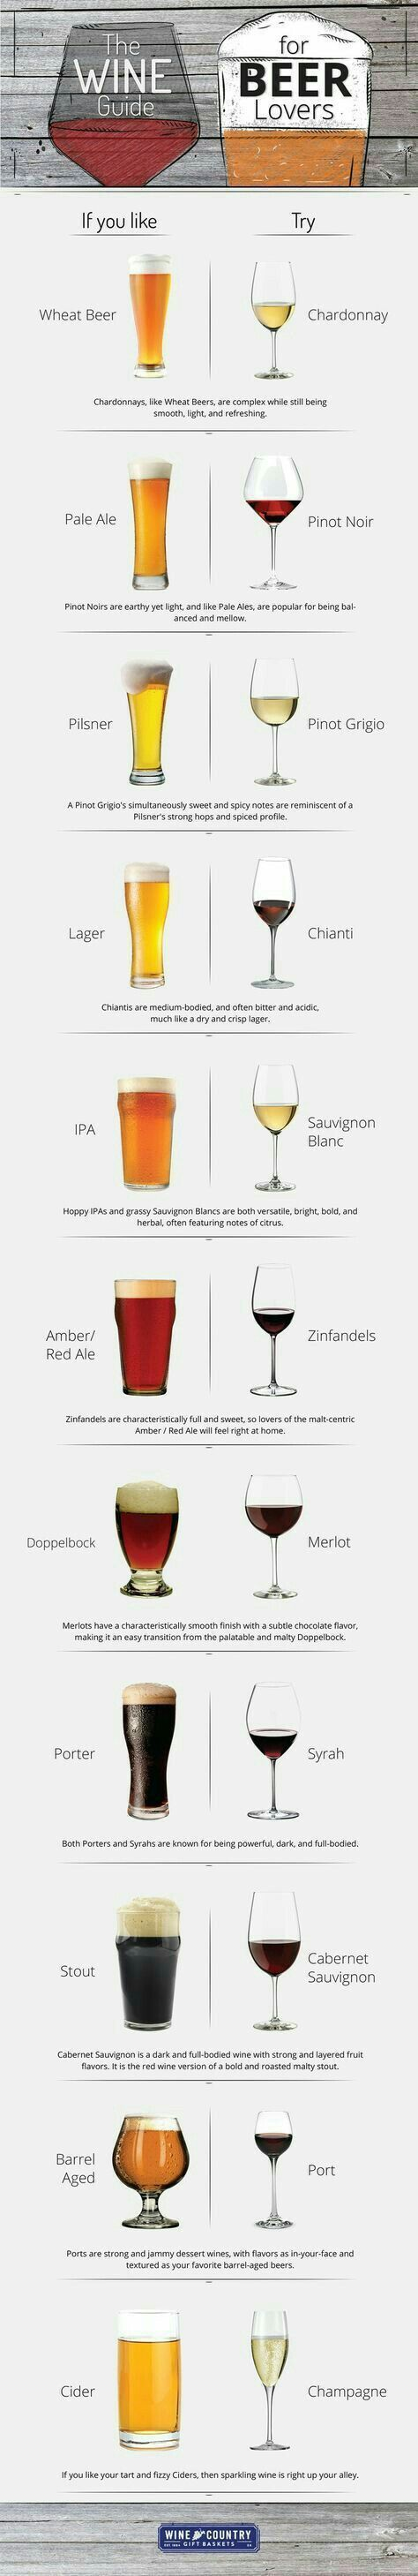 Wine for beer lovers and vice versa